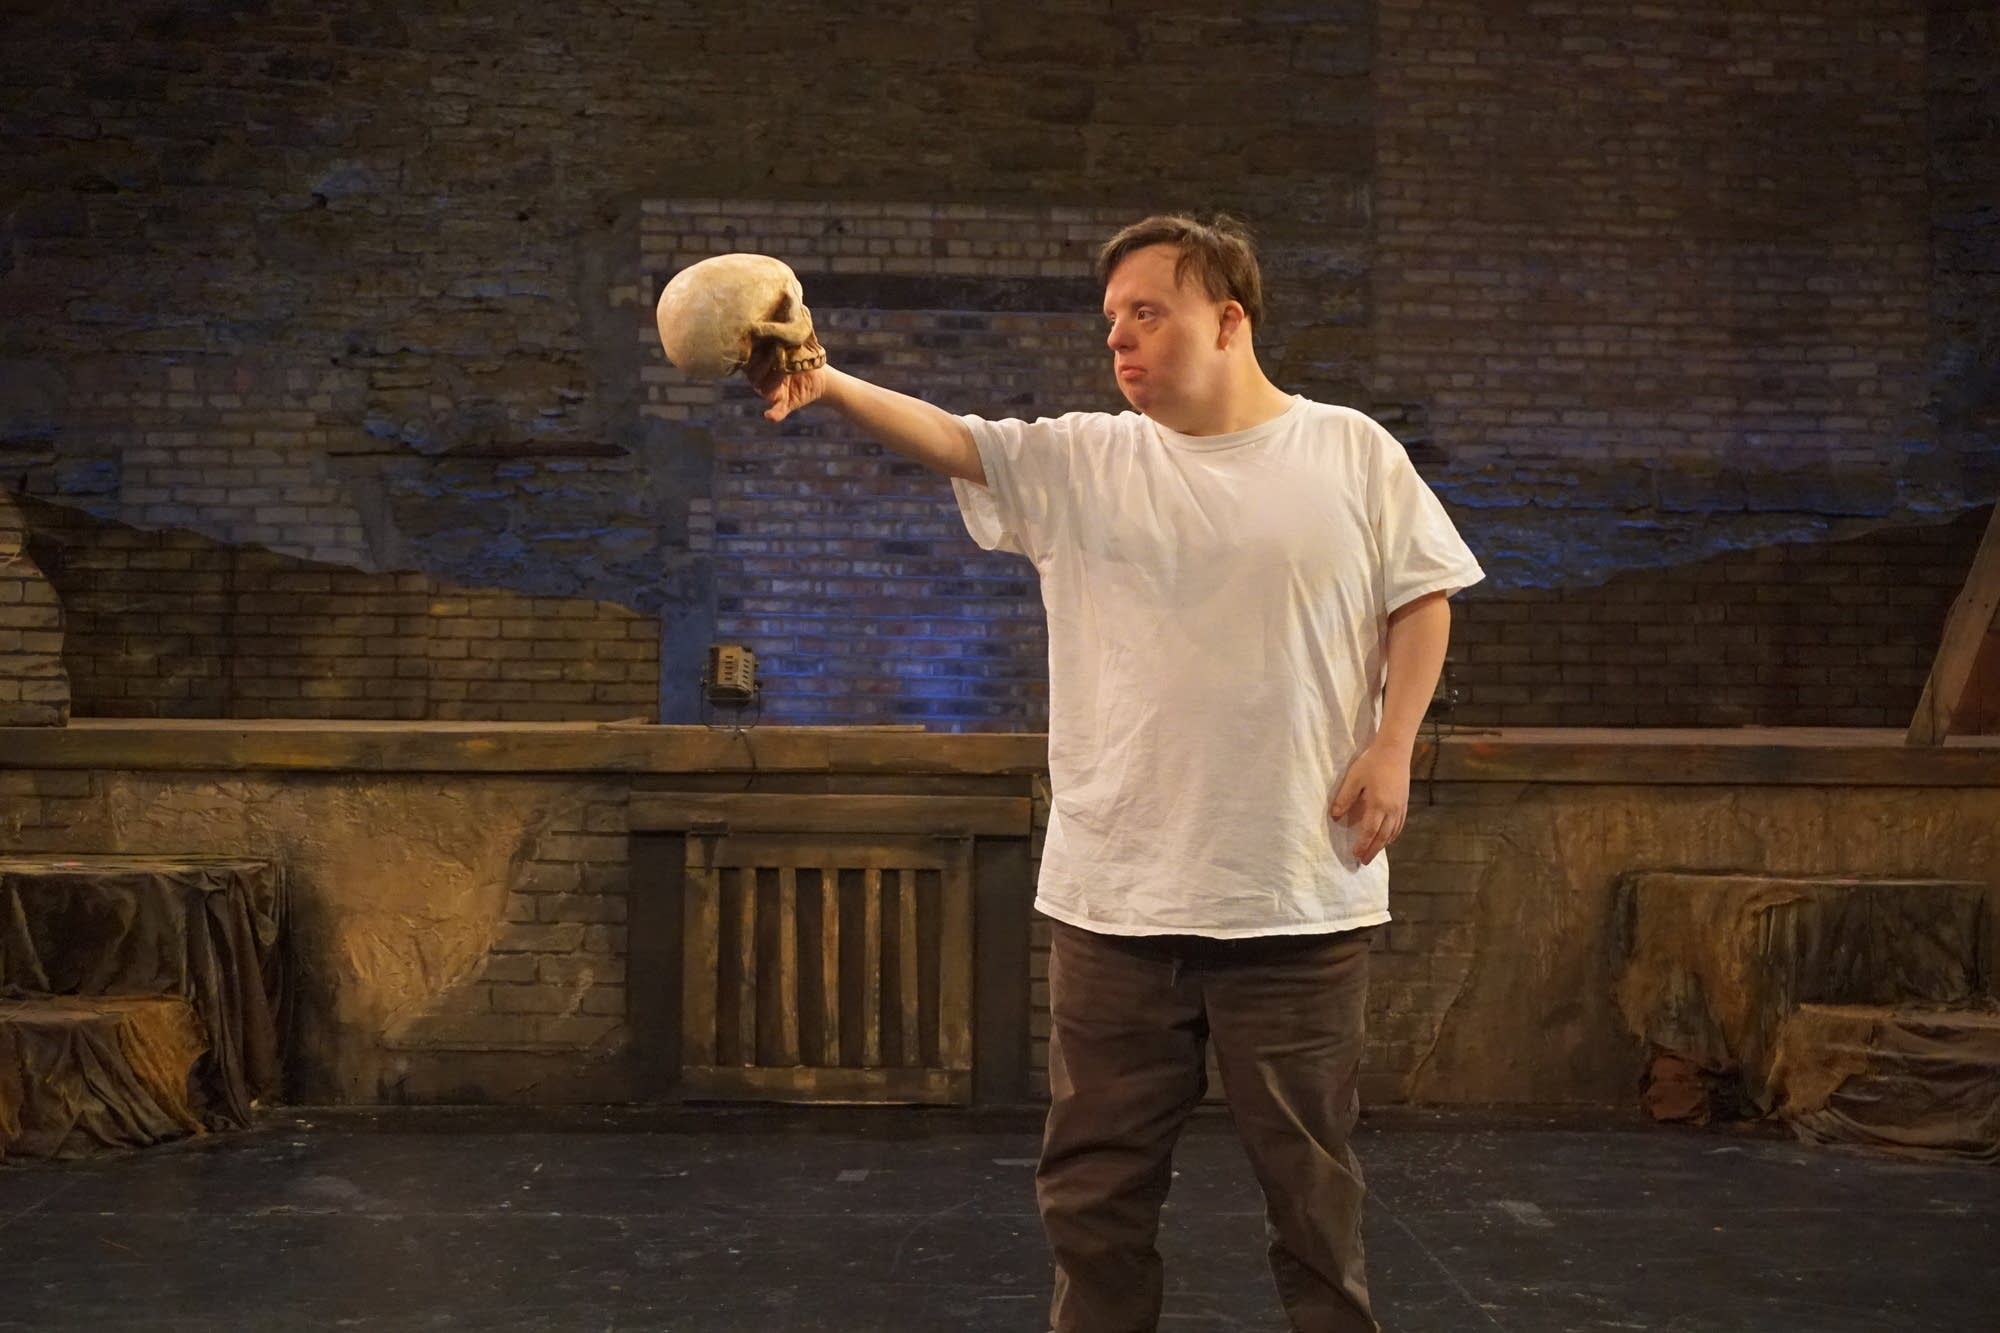 Matt Dahlstrom in the role of Hamlet